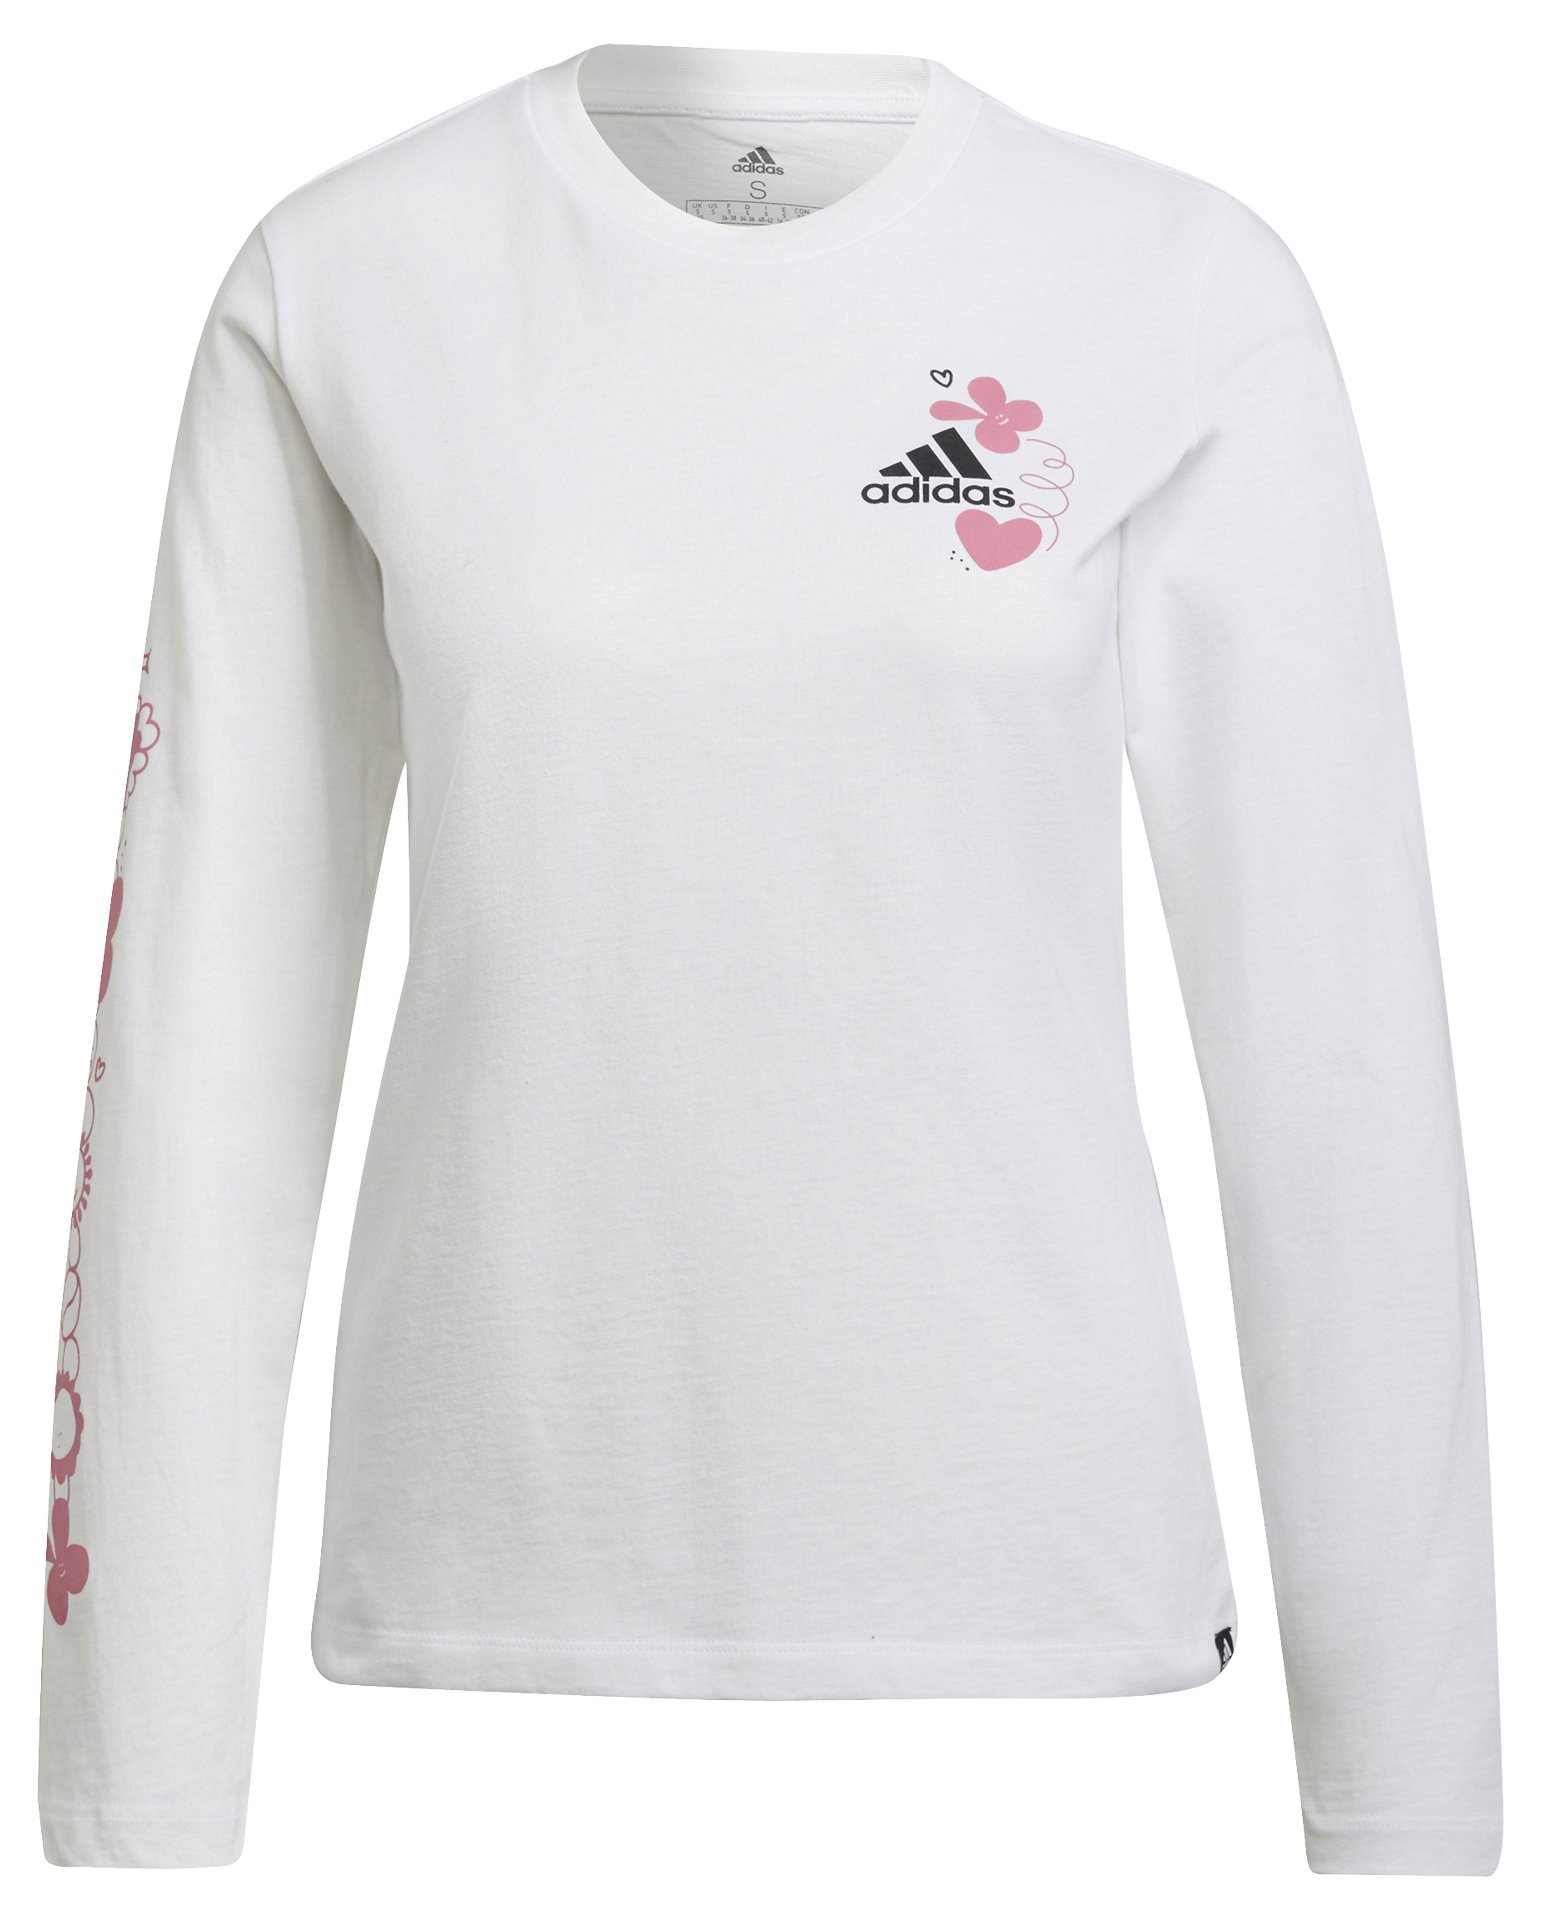 Adidas Floral Long Sleeve Graphic Tee XL